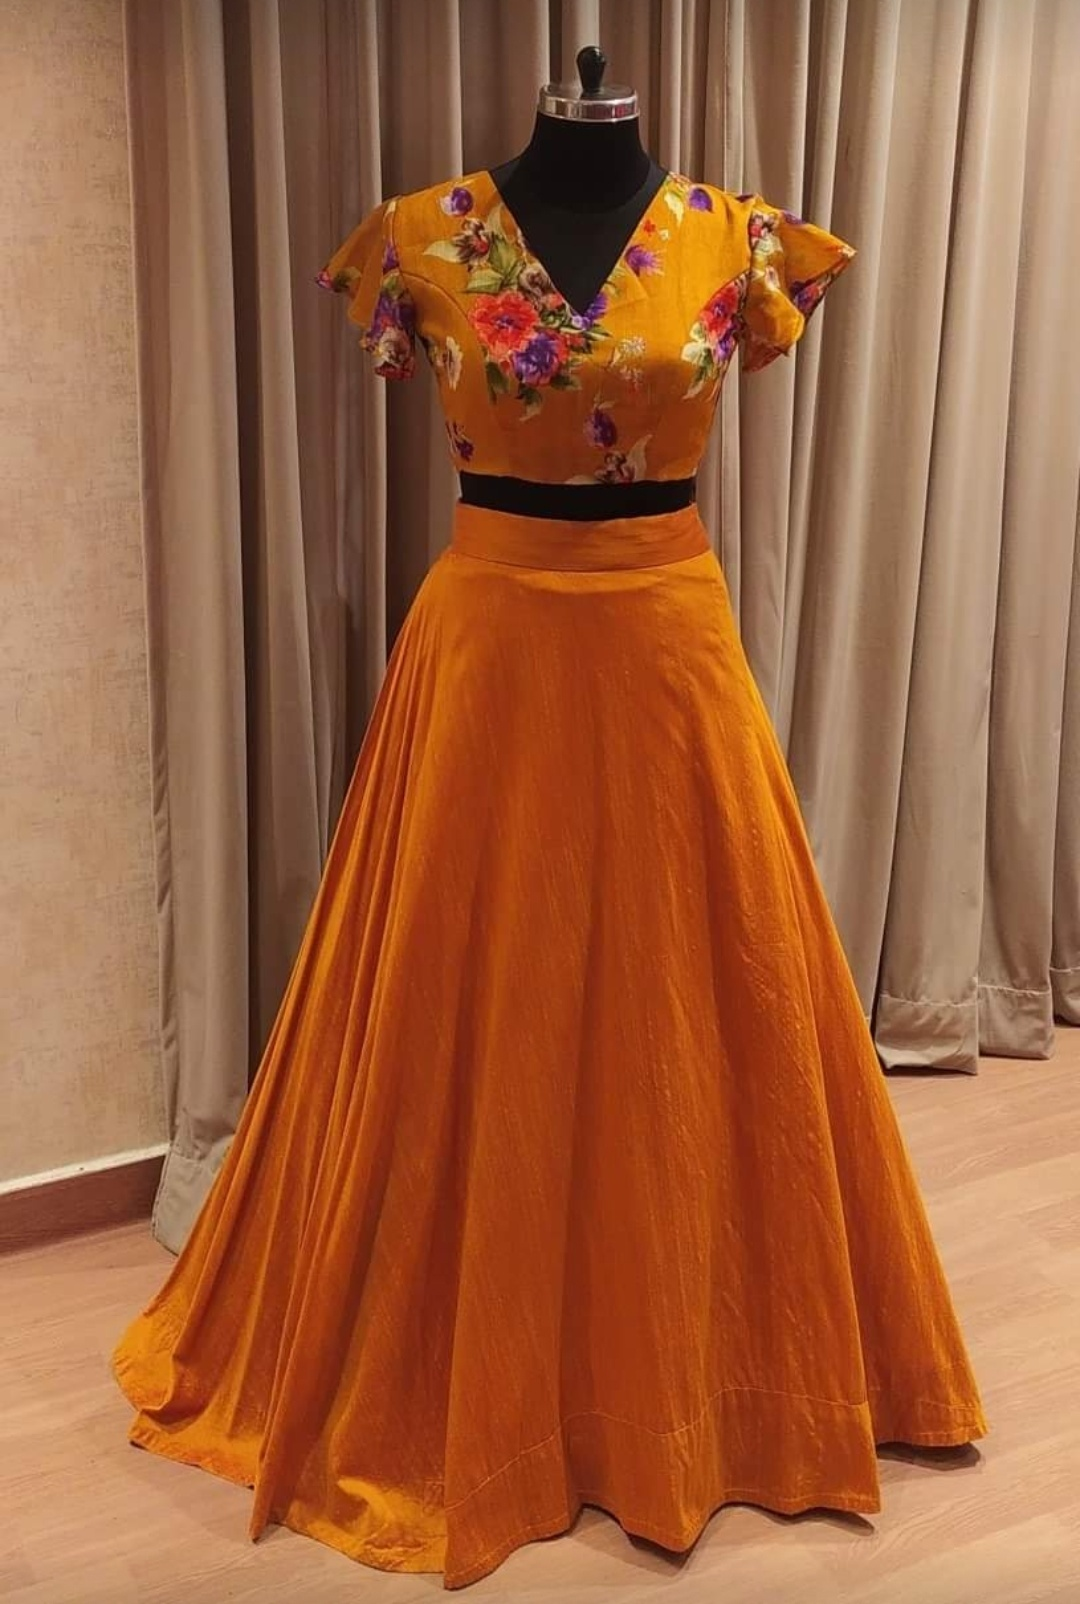 Stunning mustard yellow skirt and floral crop top. 2021-05-24